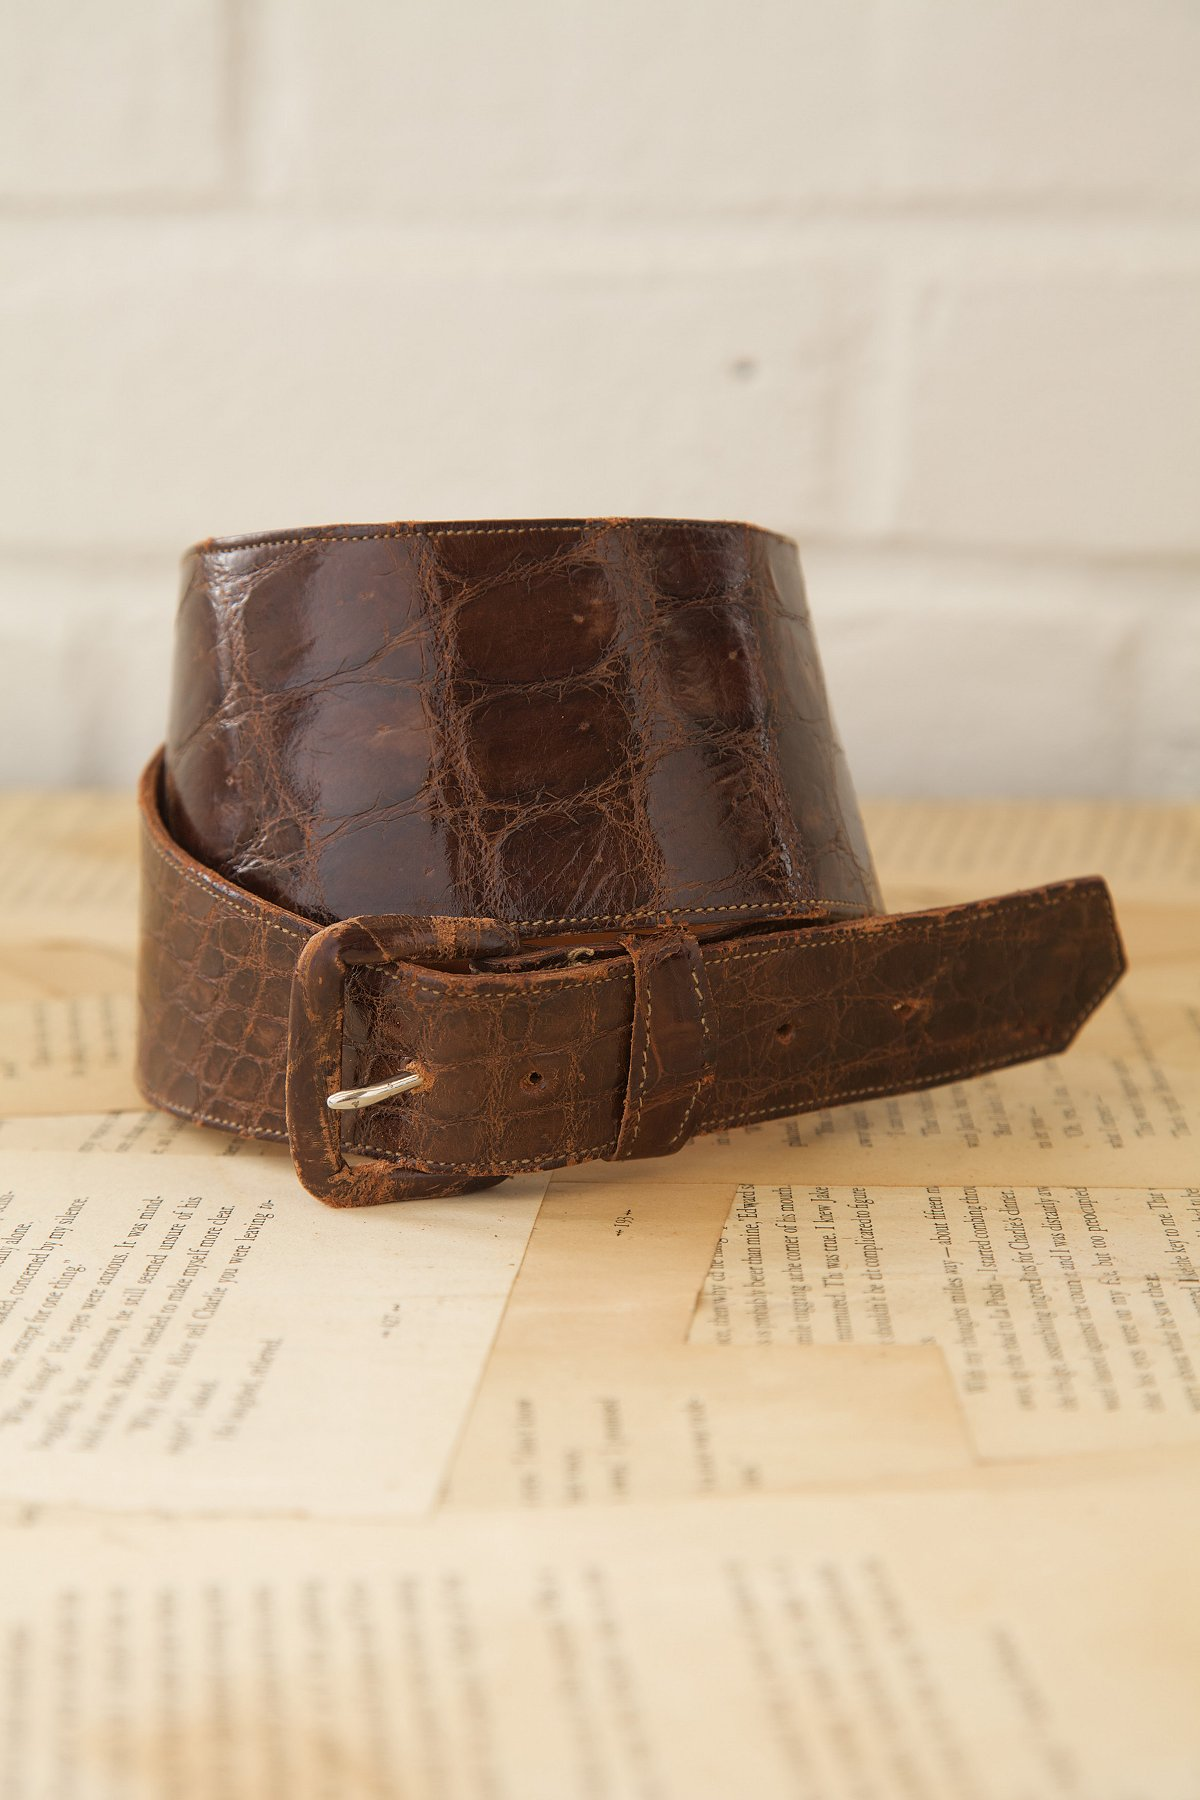 Vintage Alligator Belt